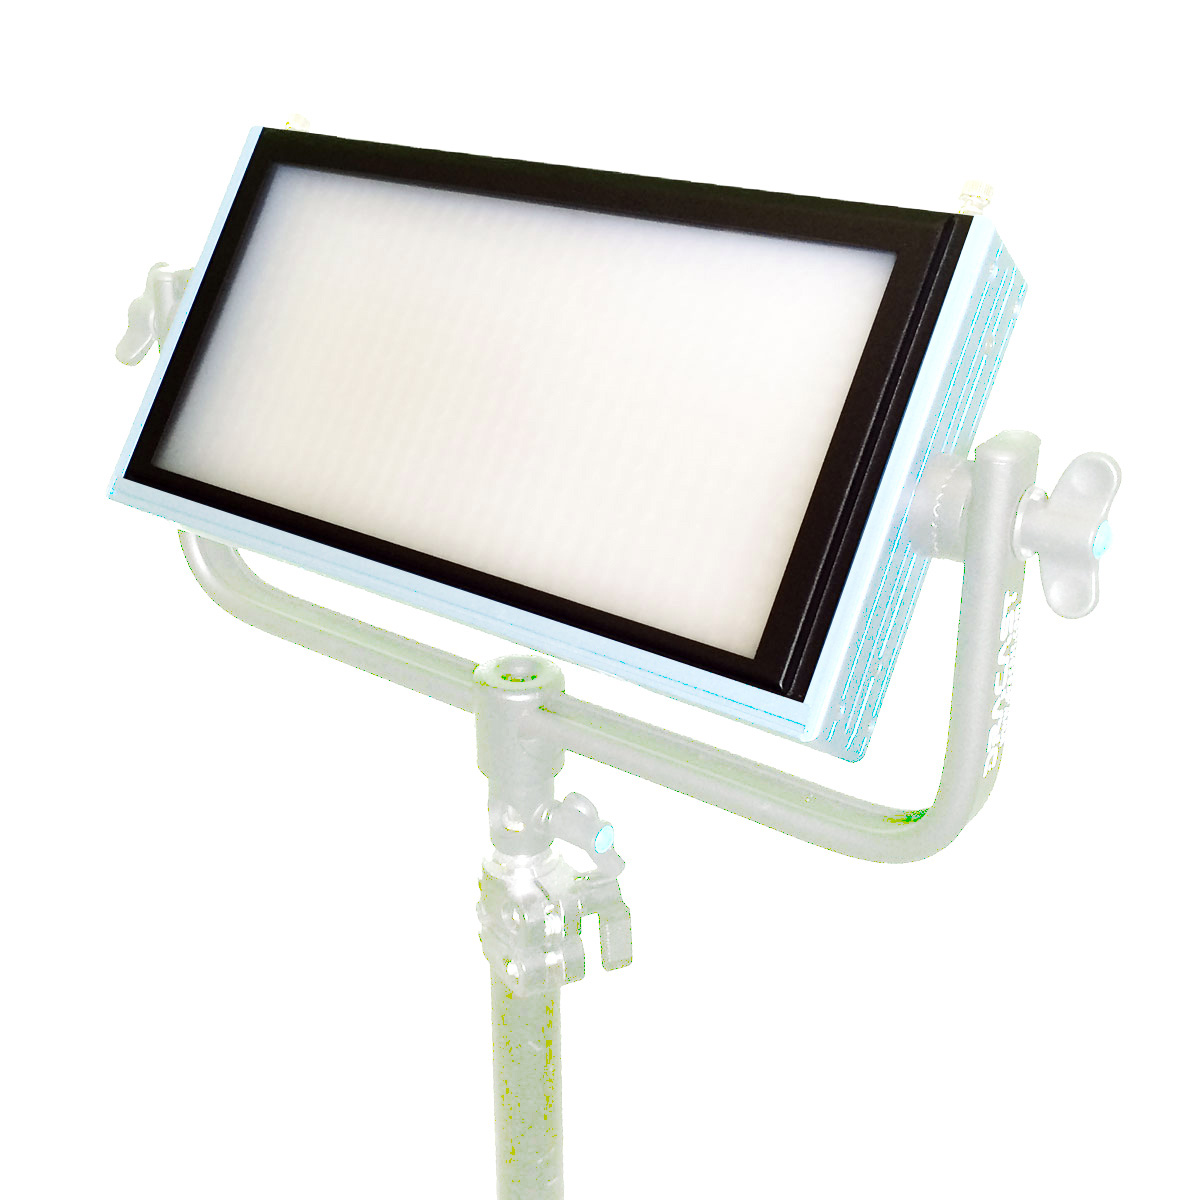 Lighting Filters & Diffusers